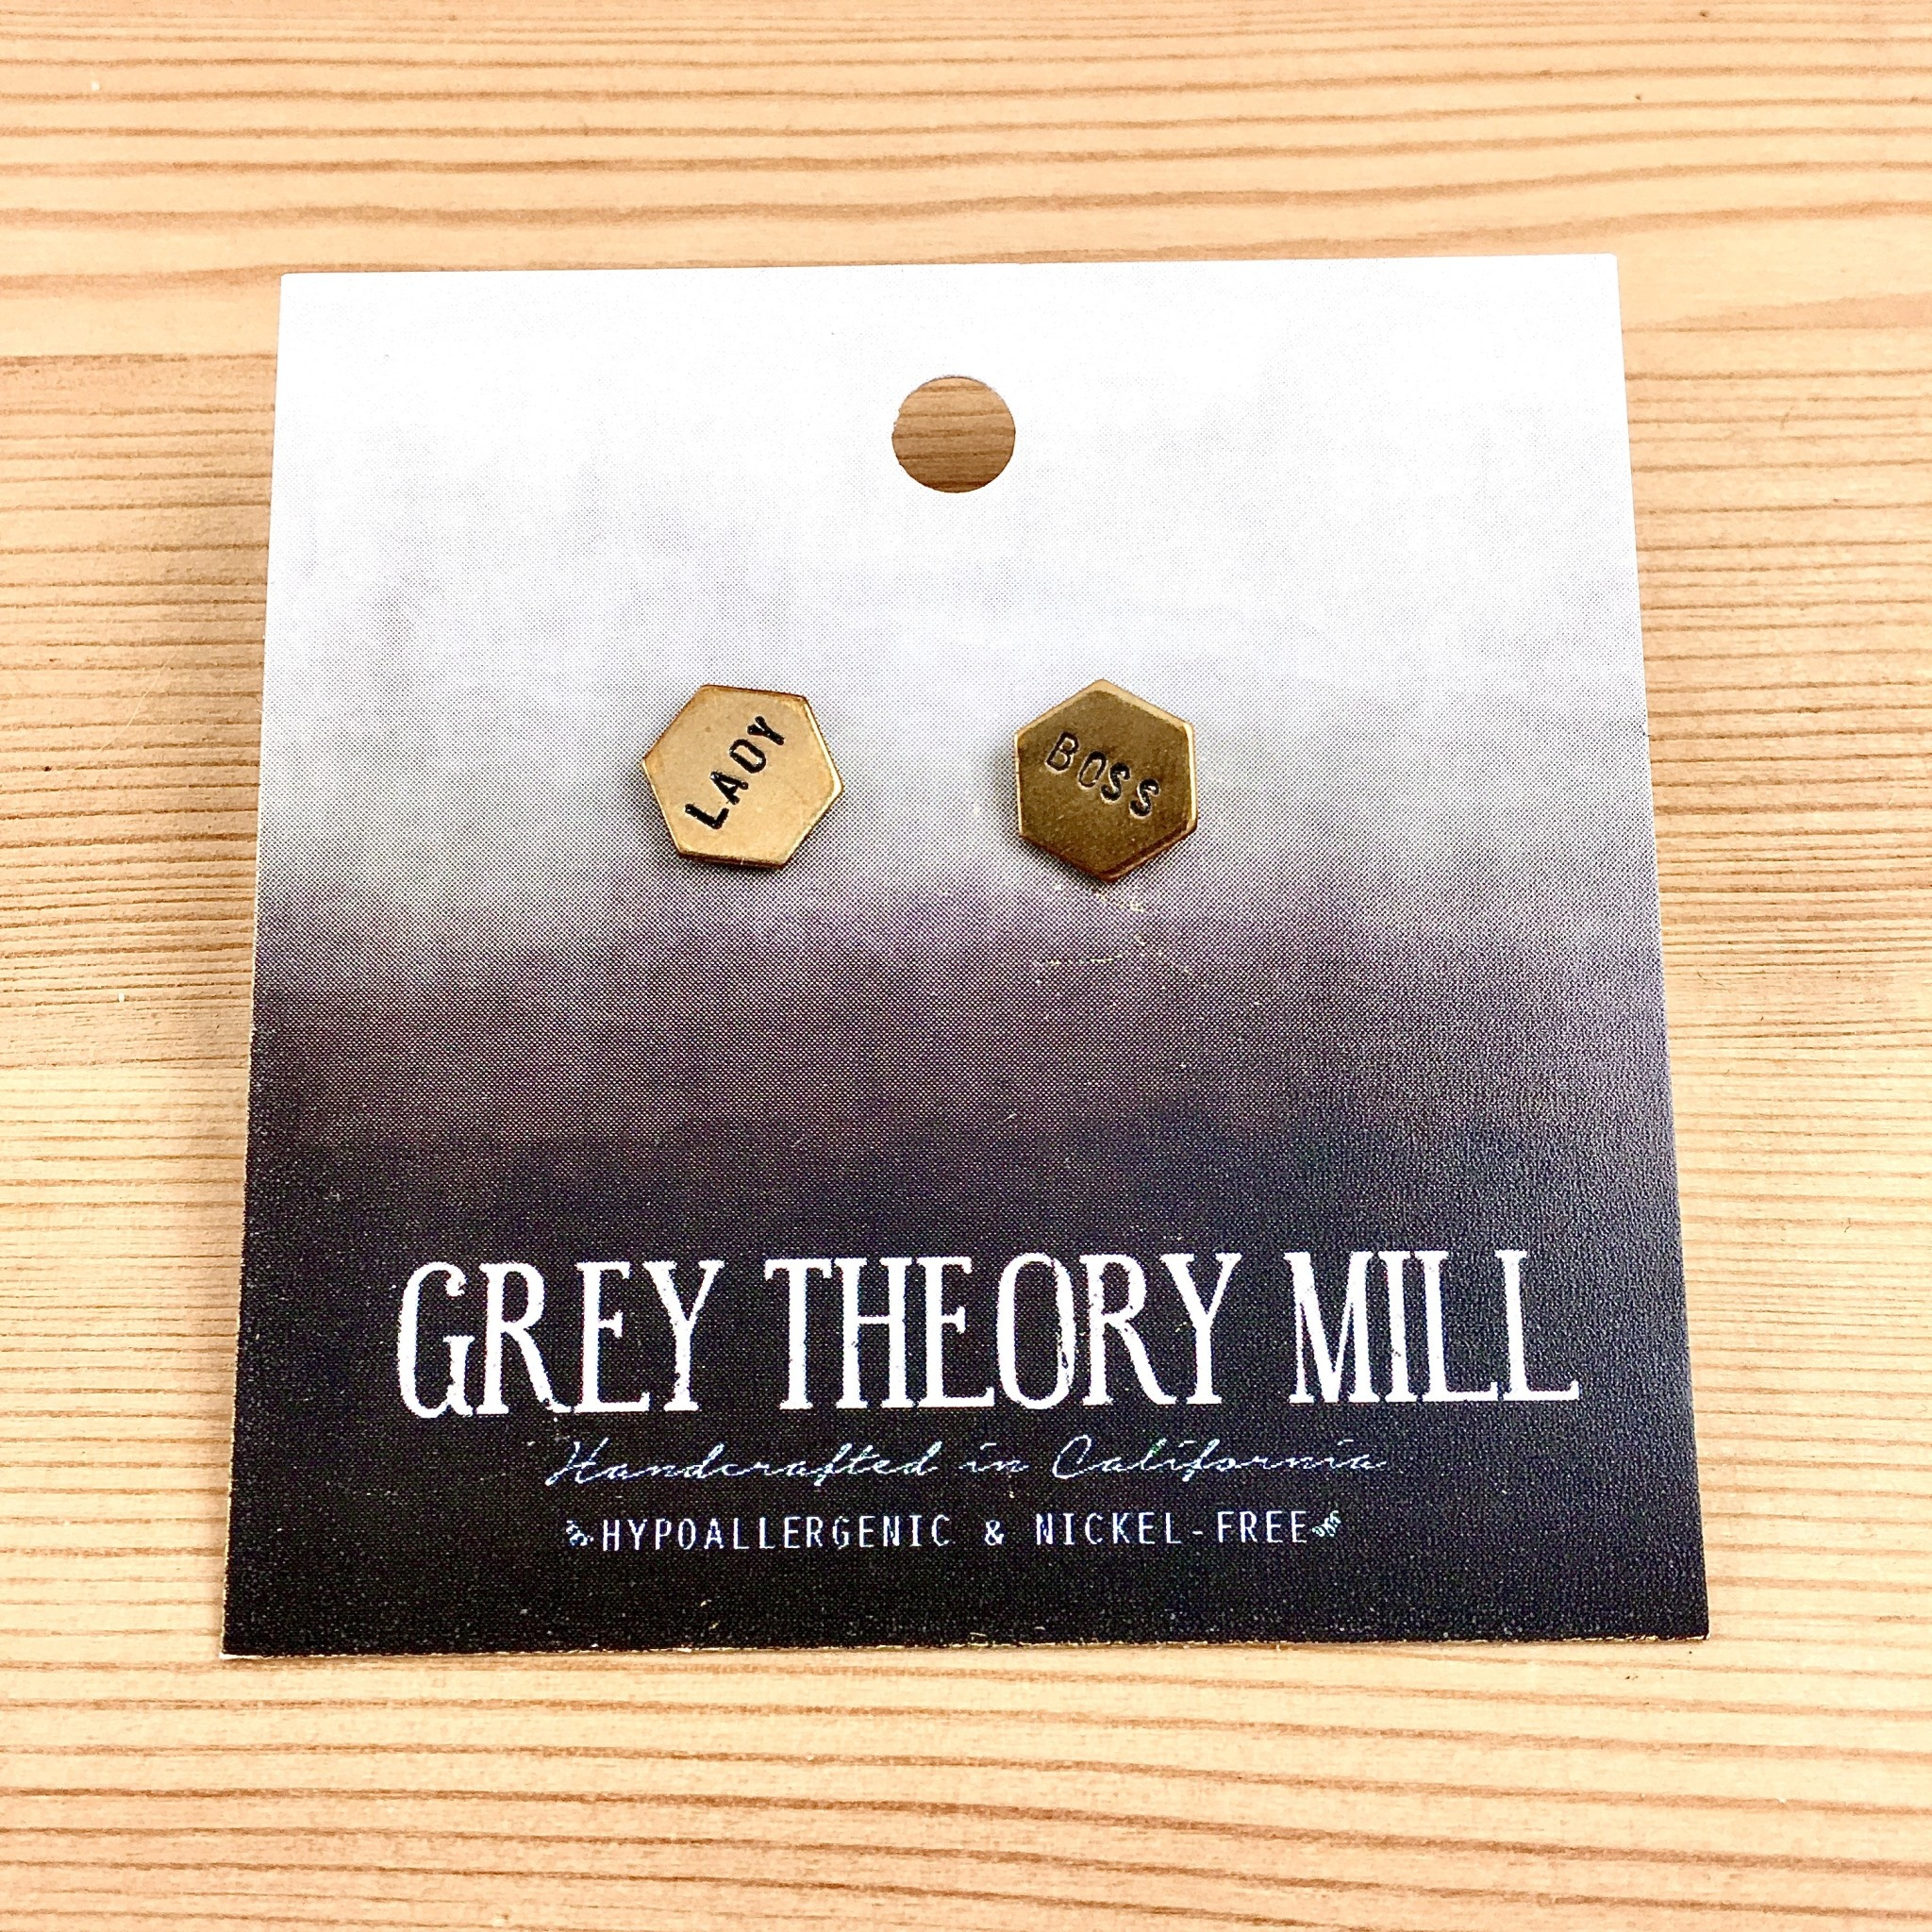 Grey Theory Mill Lady Boss Stamped Earrings